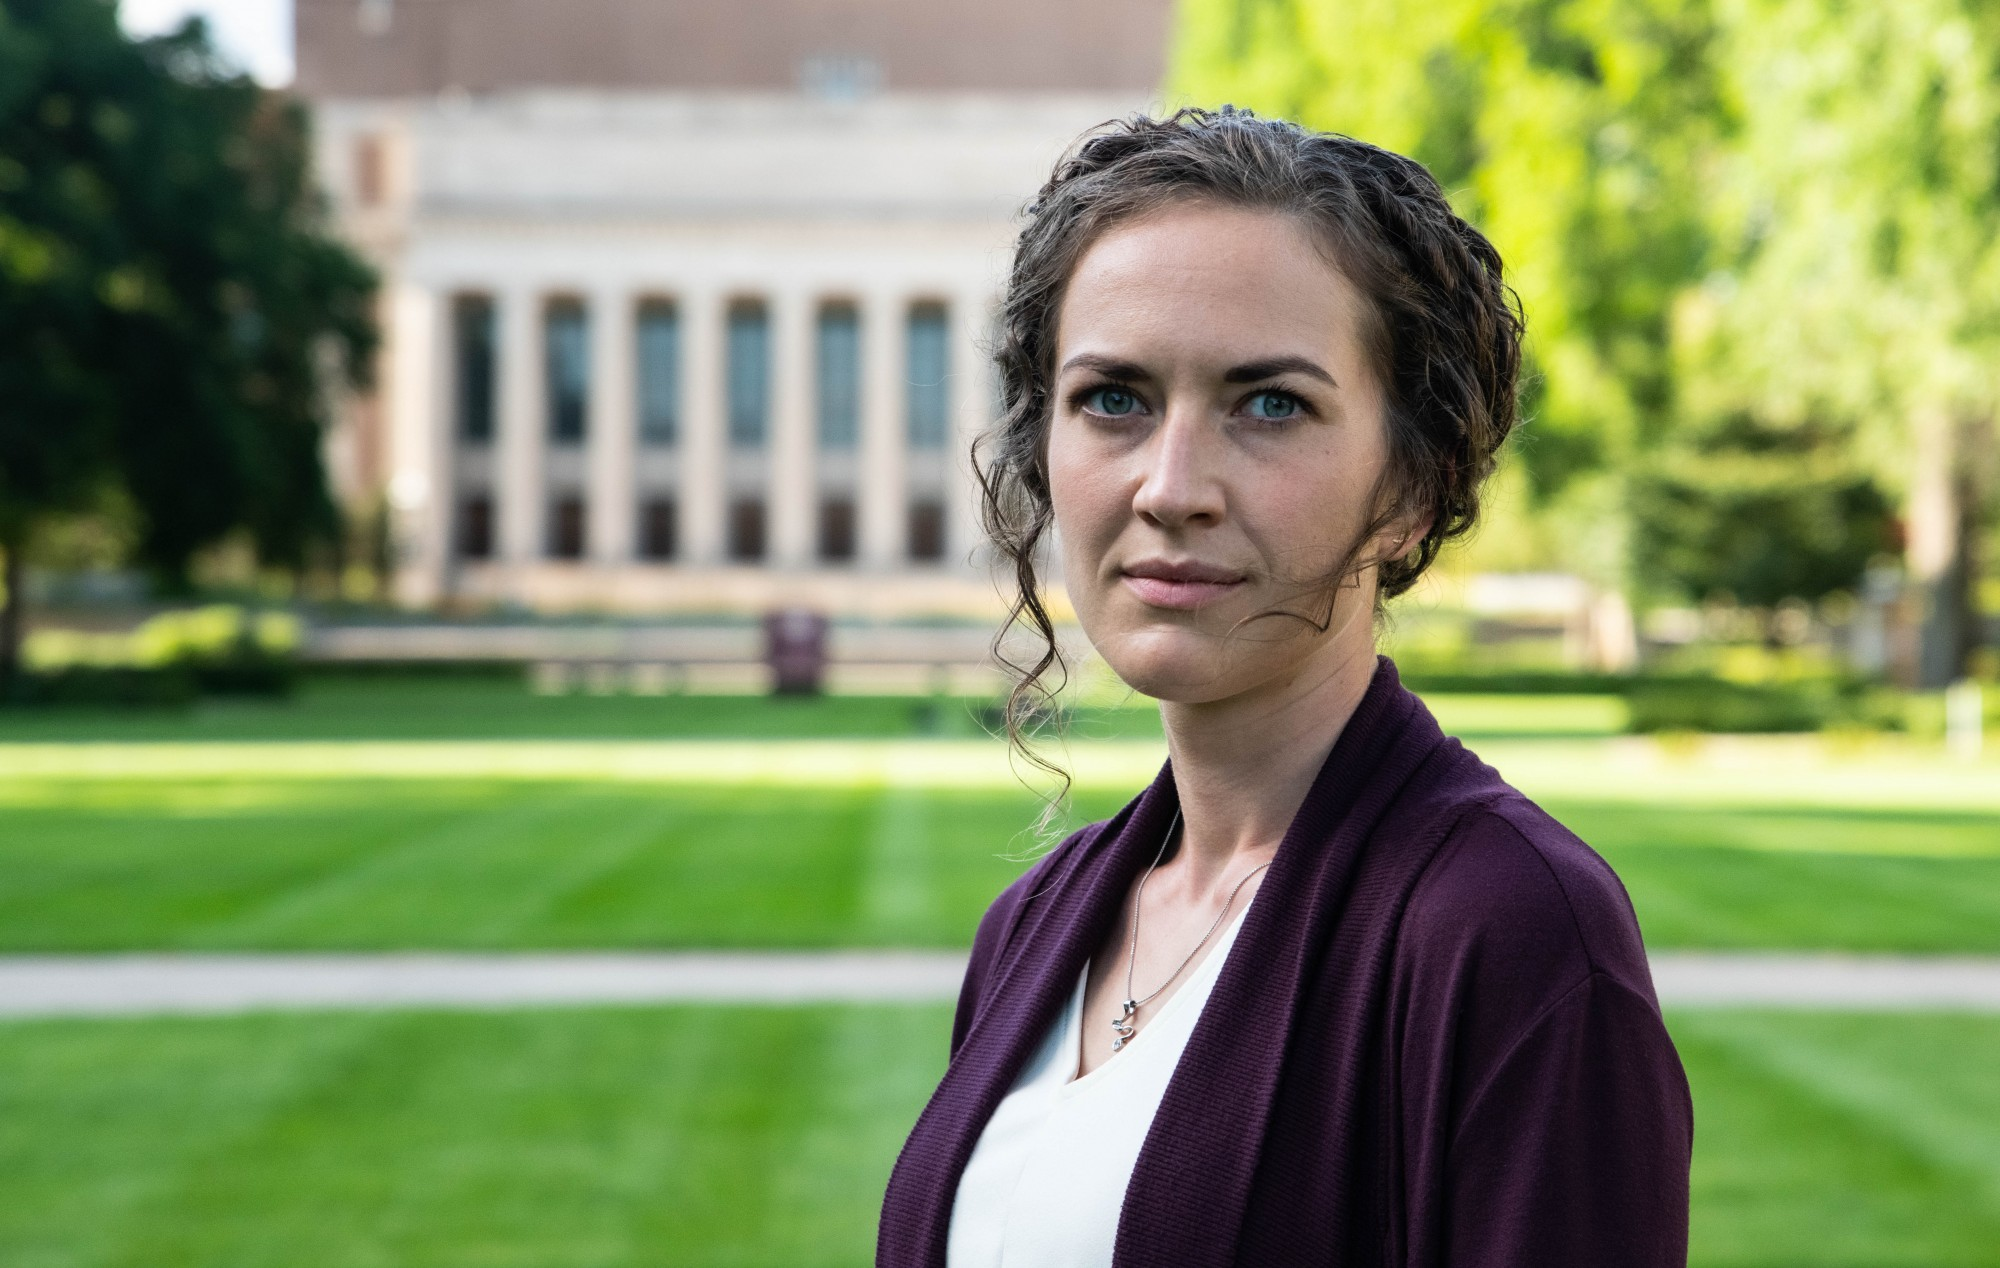 Brianna Engelson, a first-year psychiatry resident and recent graduate of the University of Minnesota Medical School, poses for a portrait on the UMN campus on Tuesday, July 21. Engelson has been conducting research on medical students' perceptions of mental illness and therapy.